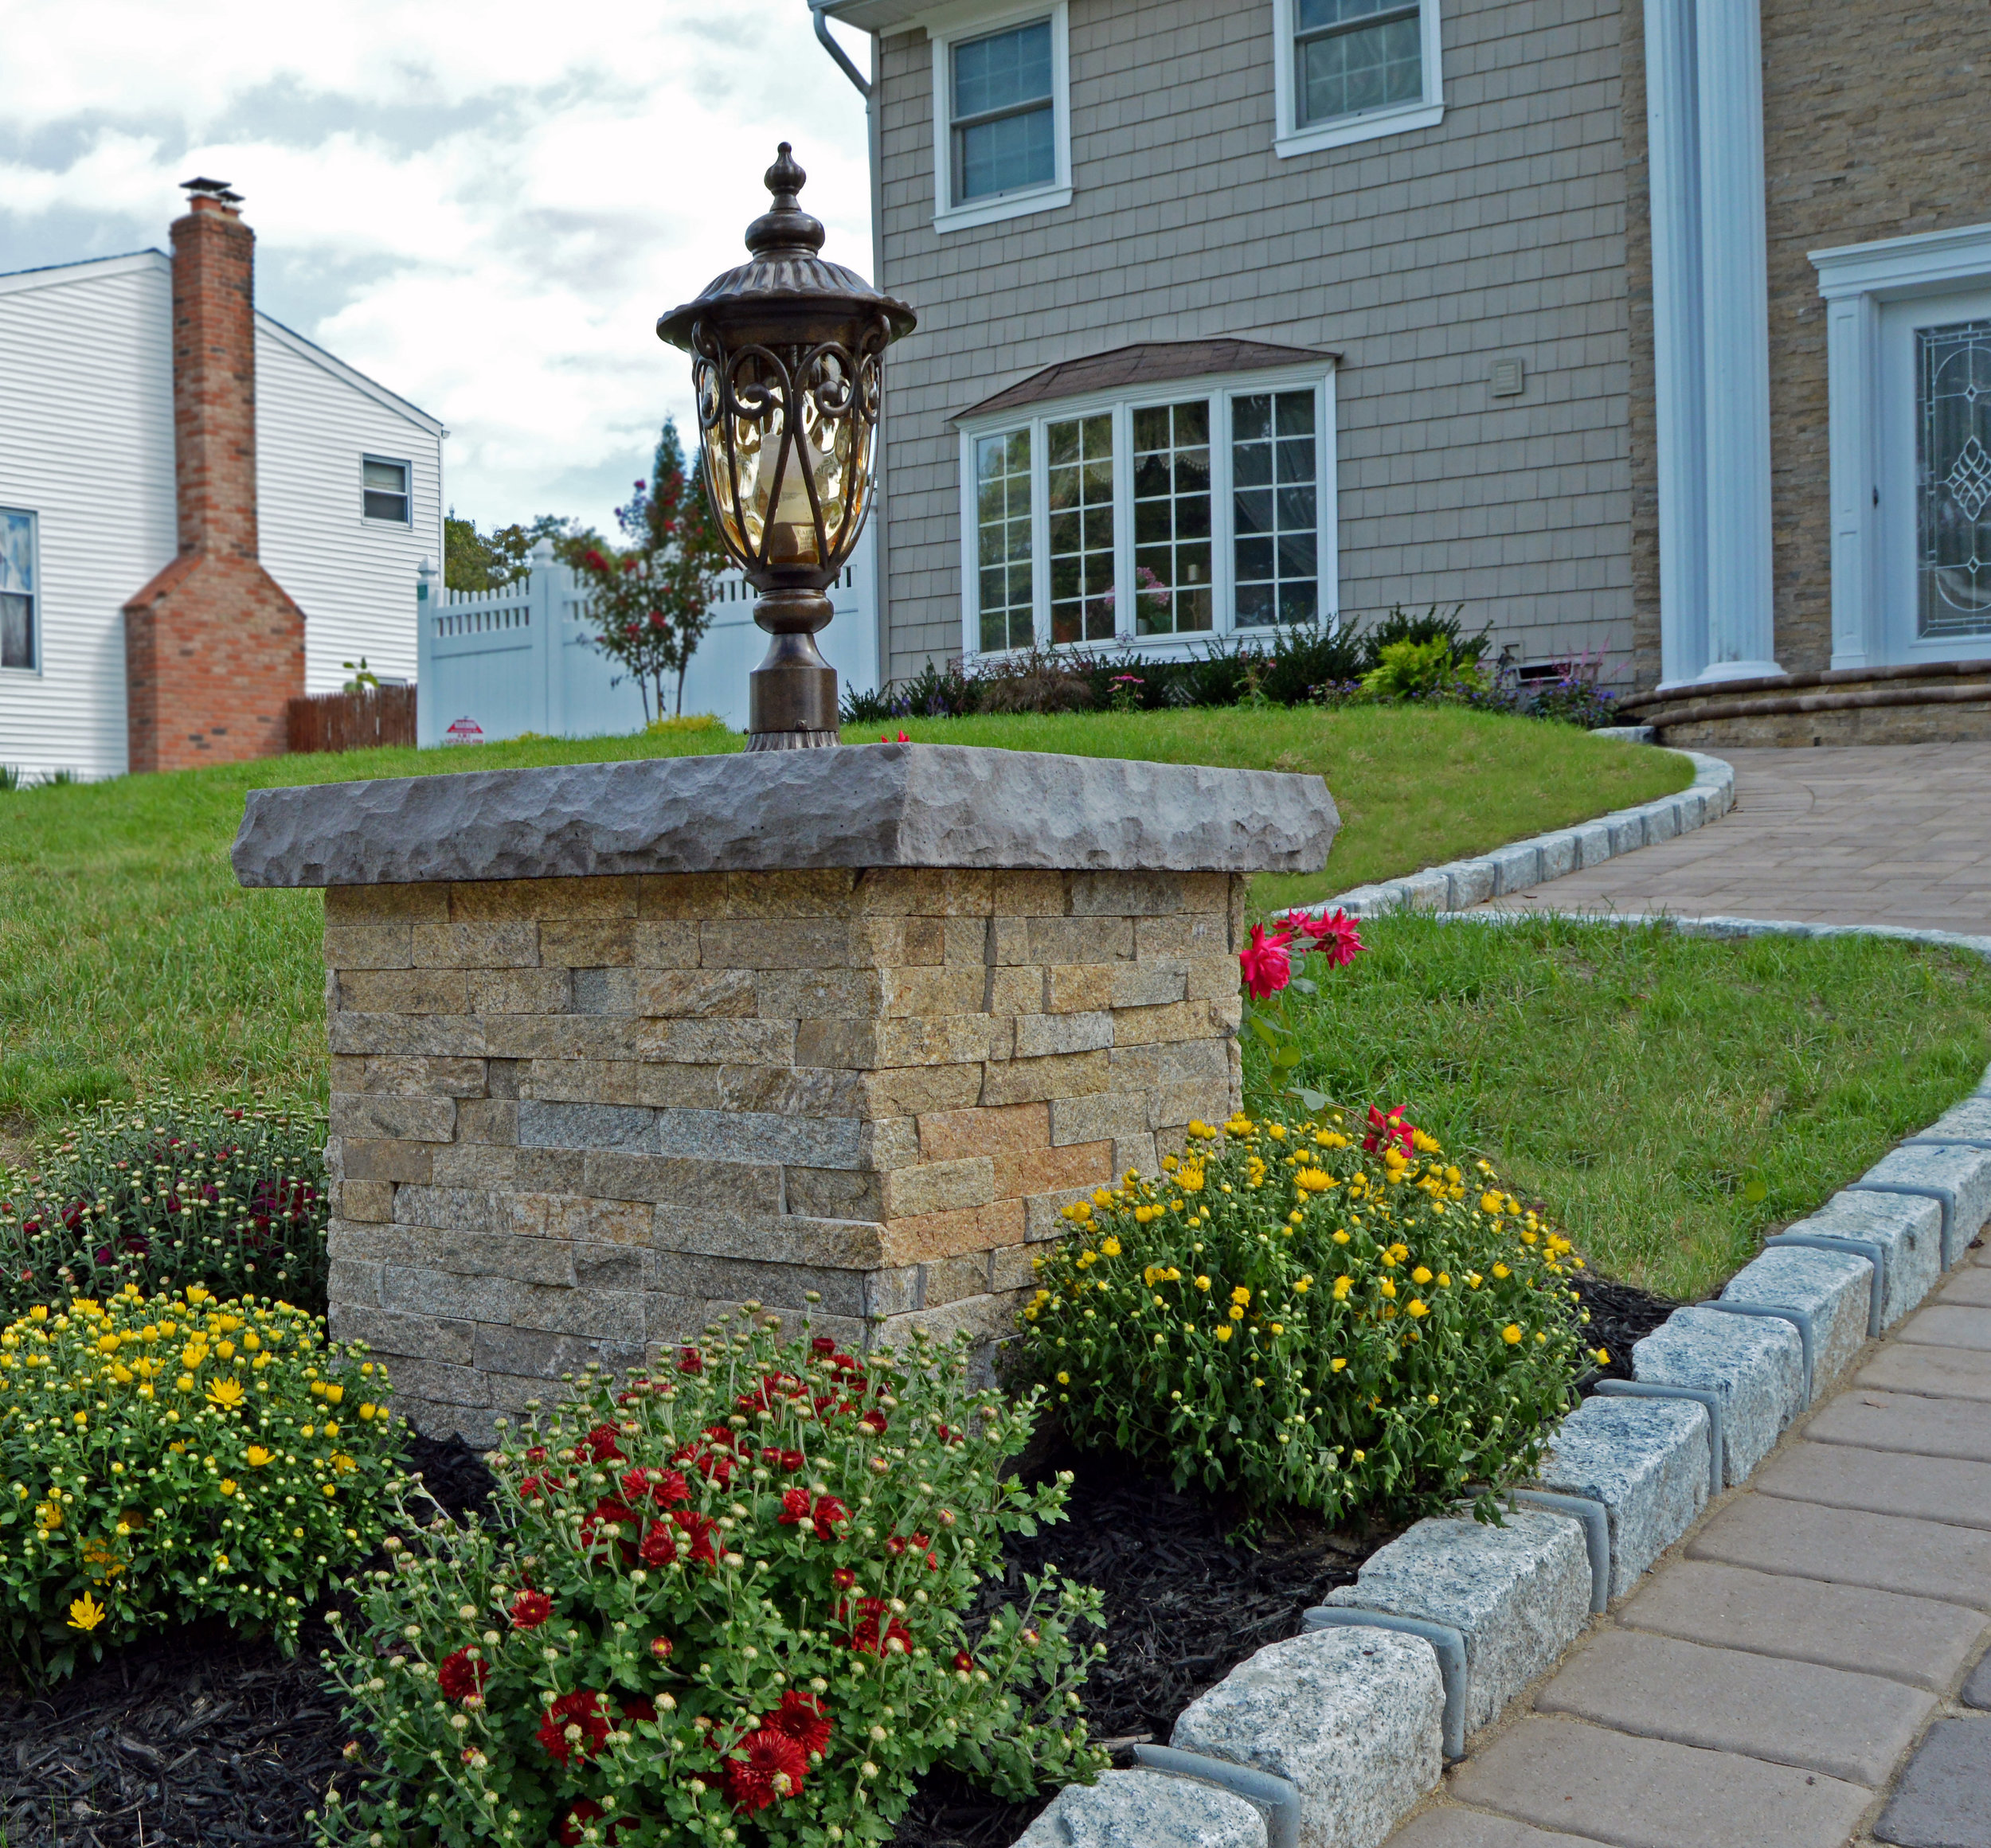 Smithtown, NY landscape lighting